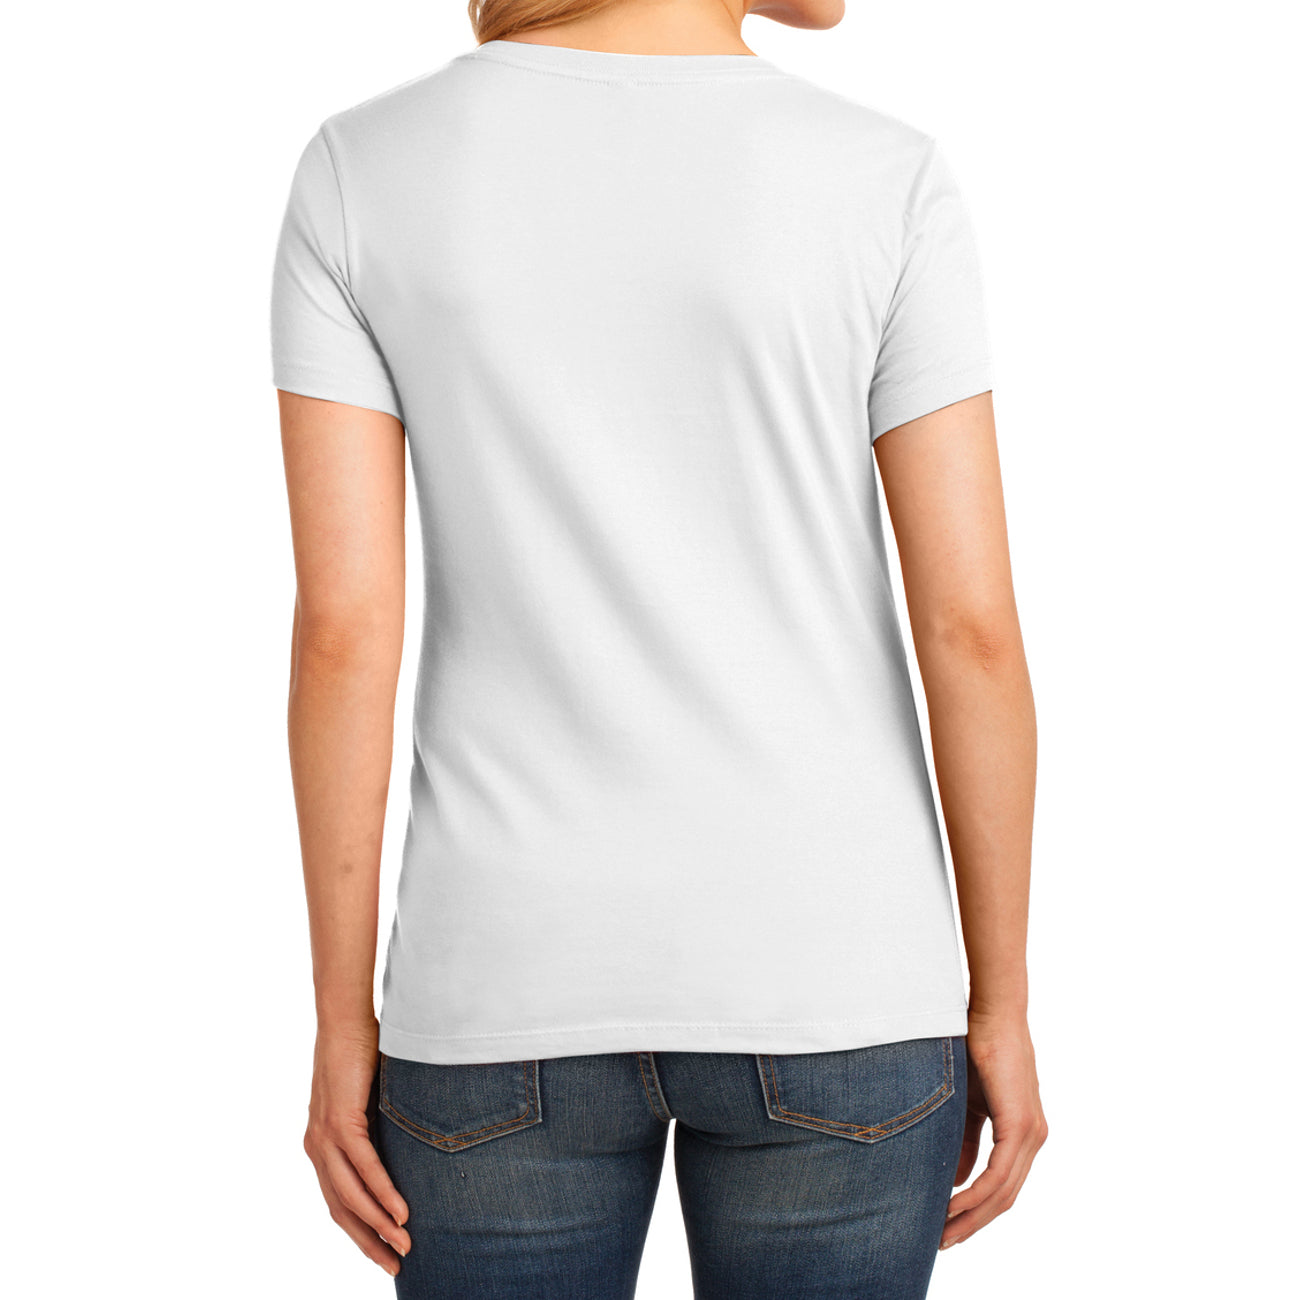 Women's Core Cotton V-Neck Tee - White - Back